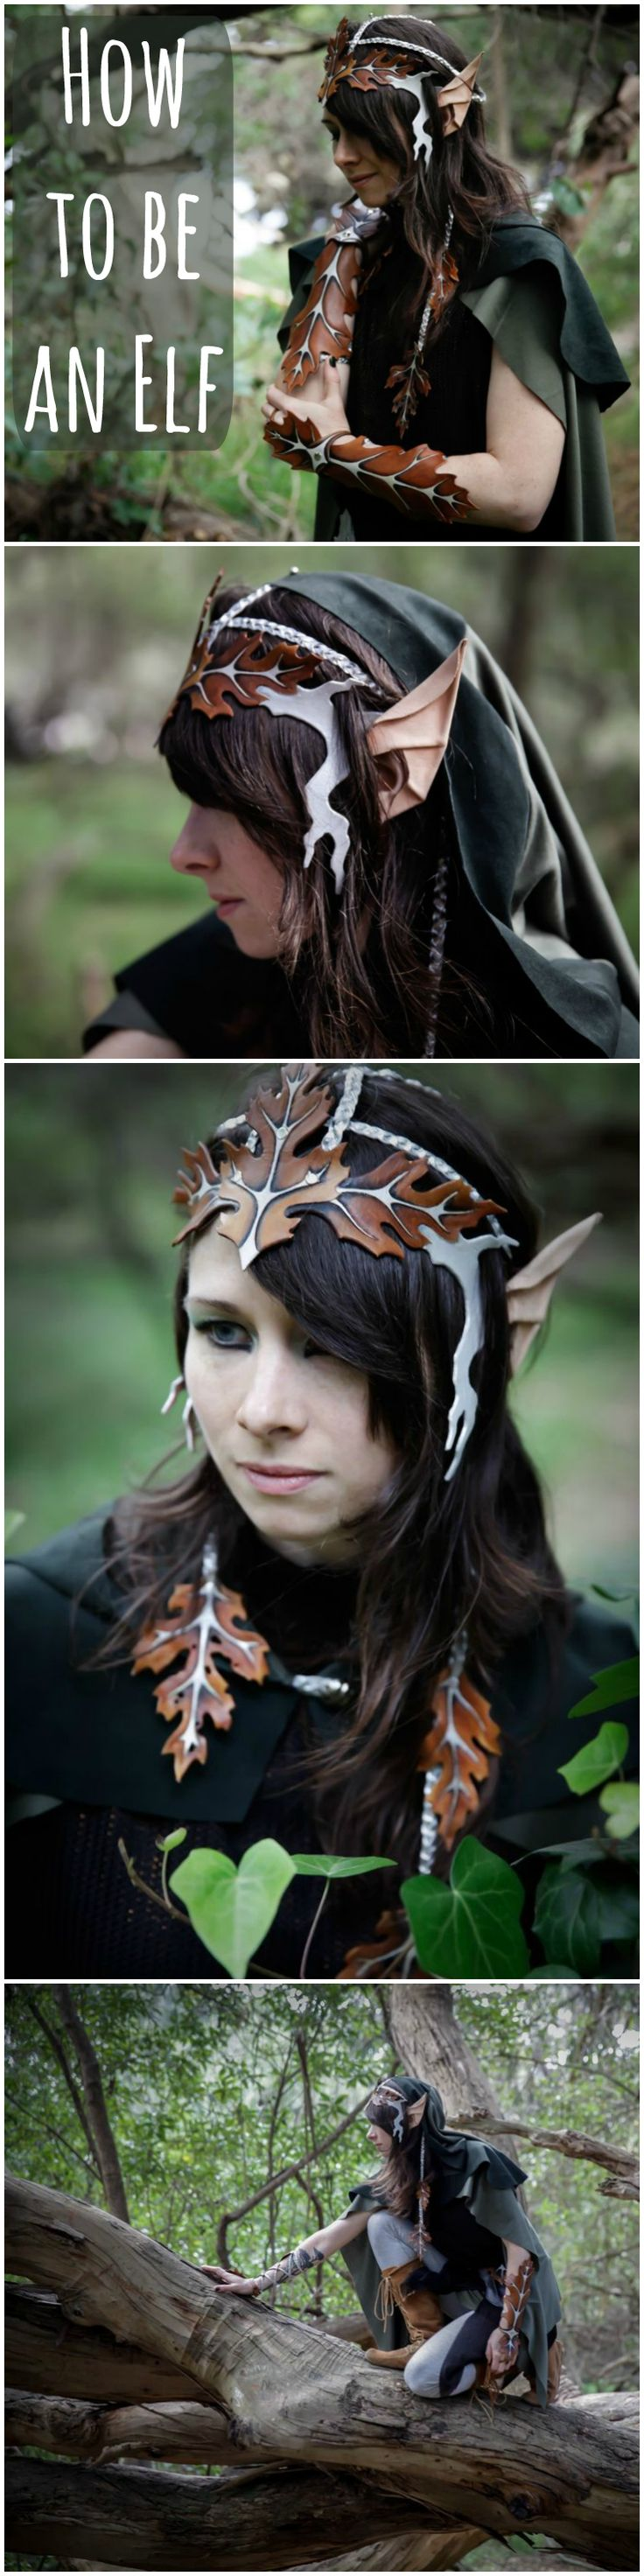 Leather Elf Costume | Learn all the leather working techniques you need to create your own elf alter ego!